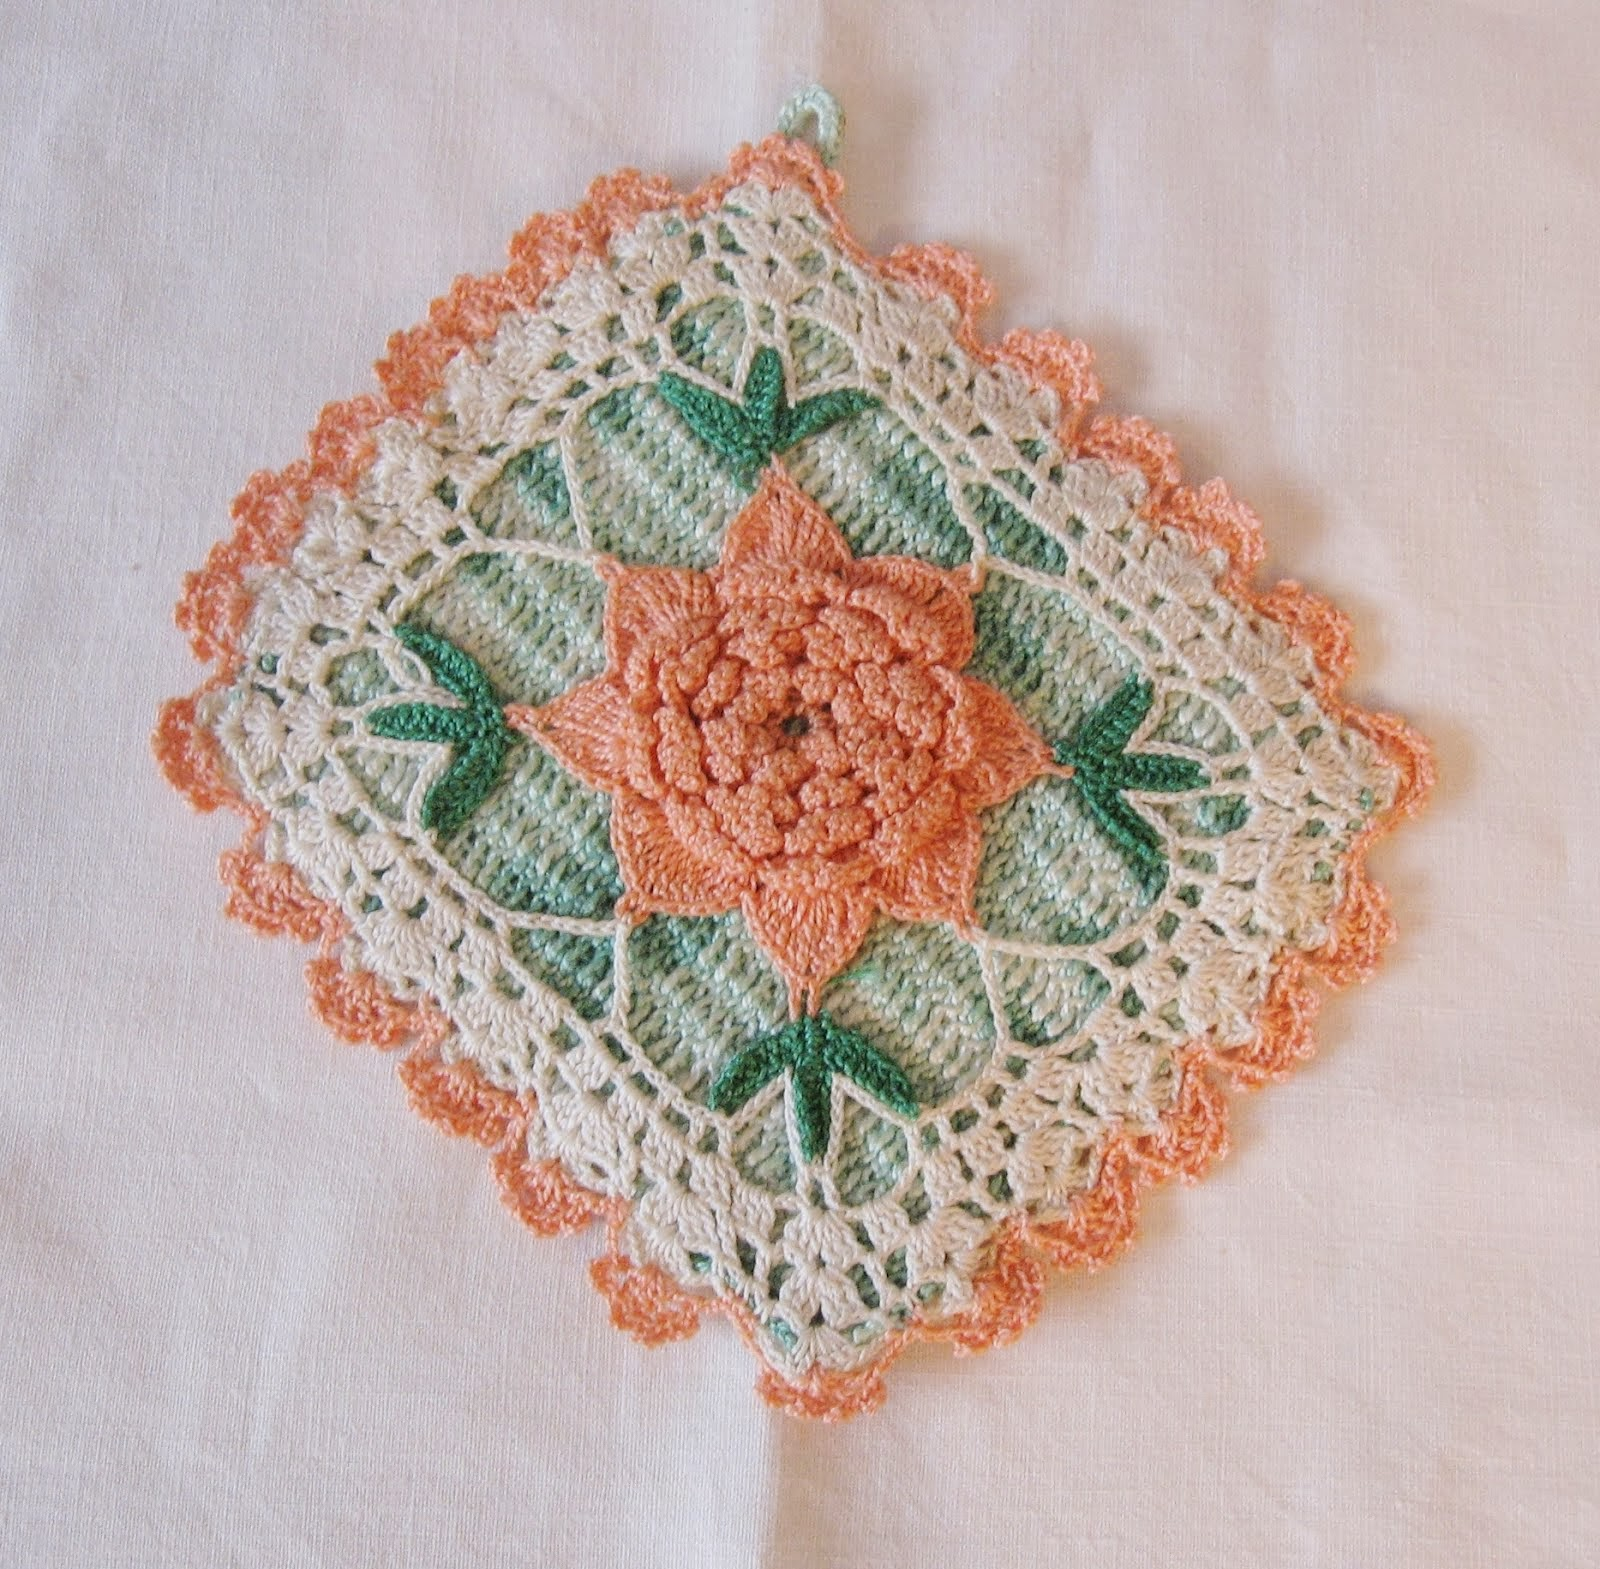 The Art of a Crochet Potholder